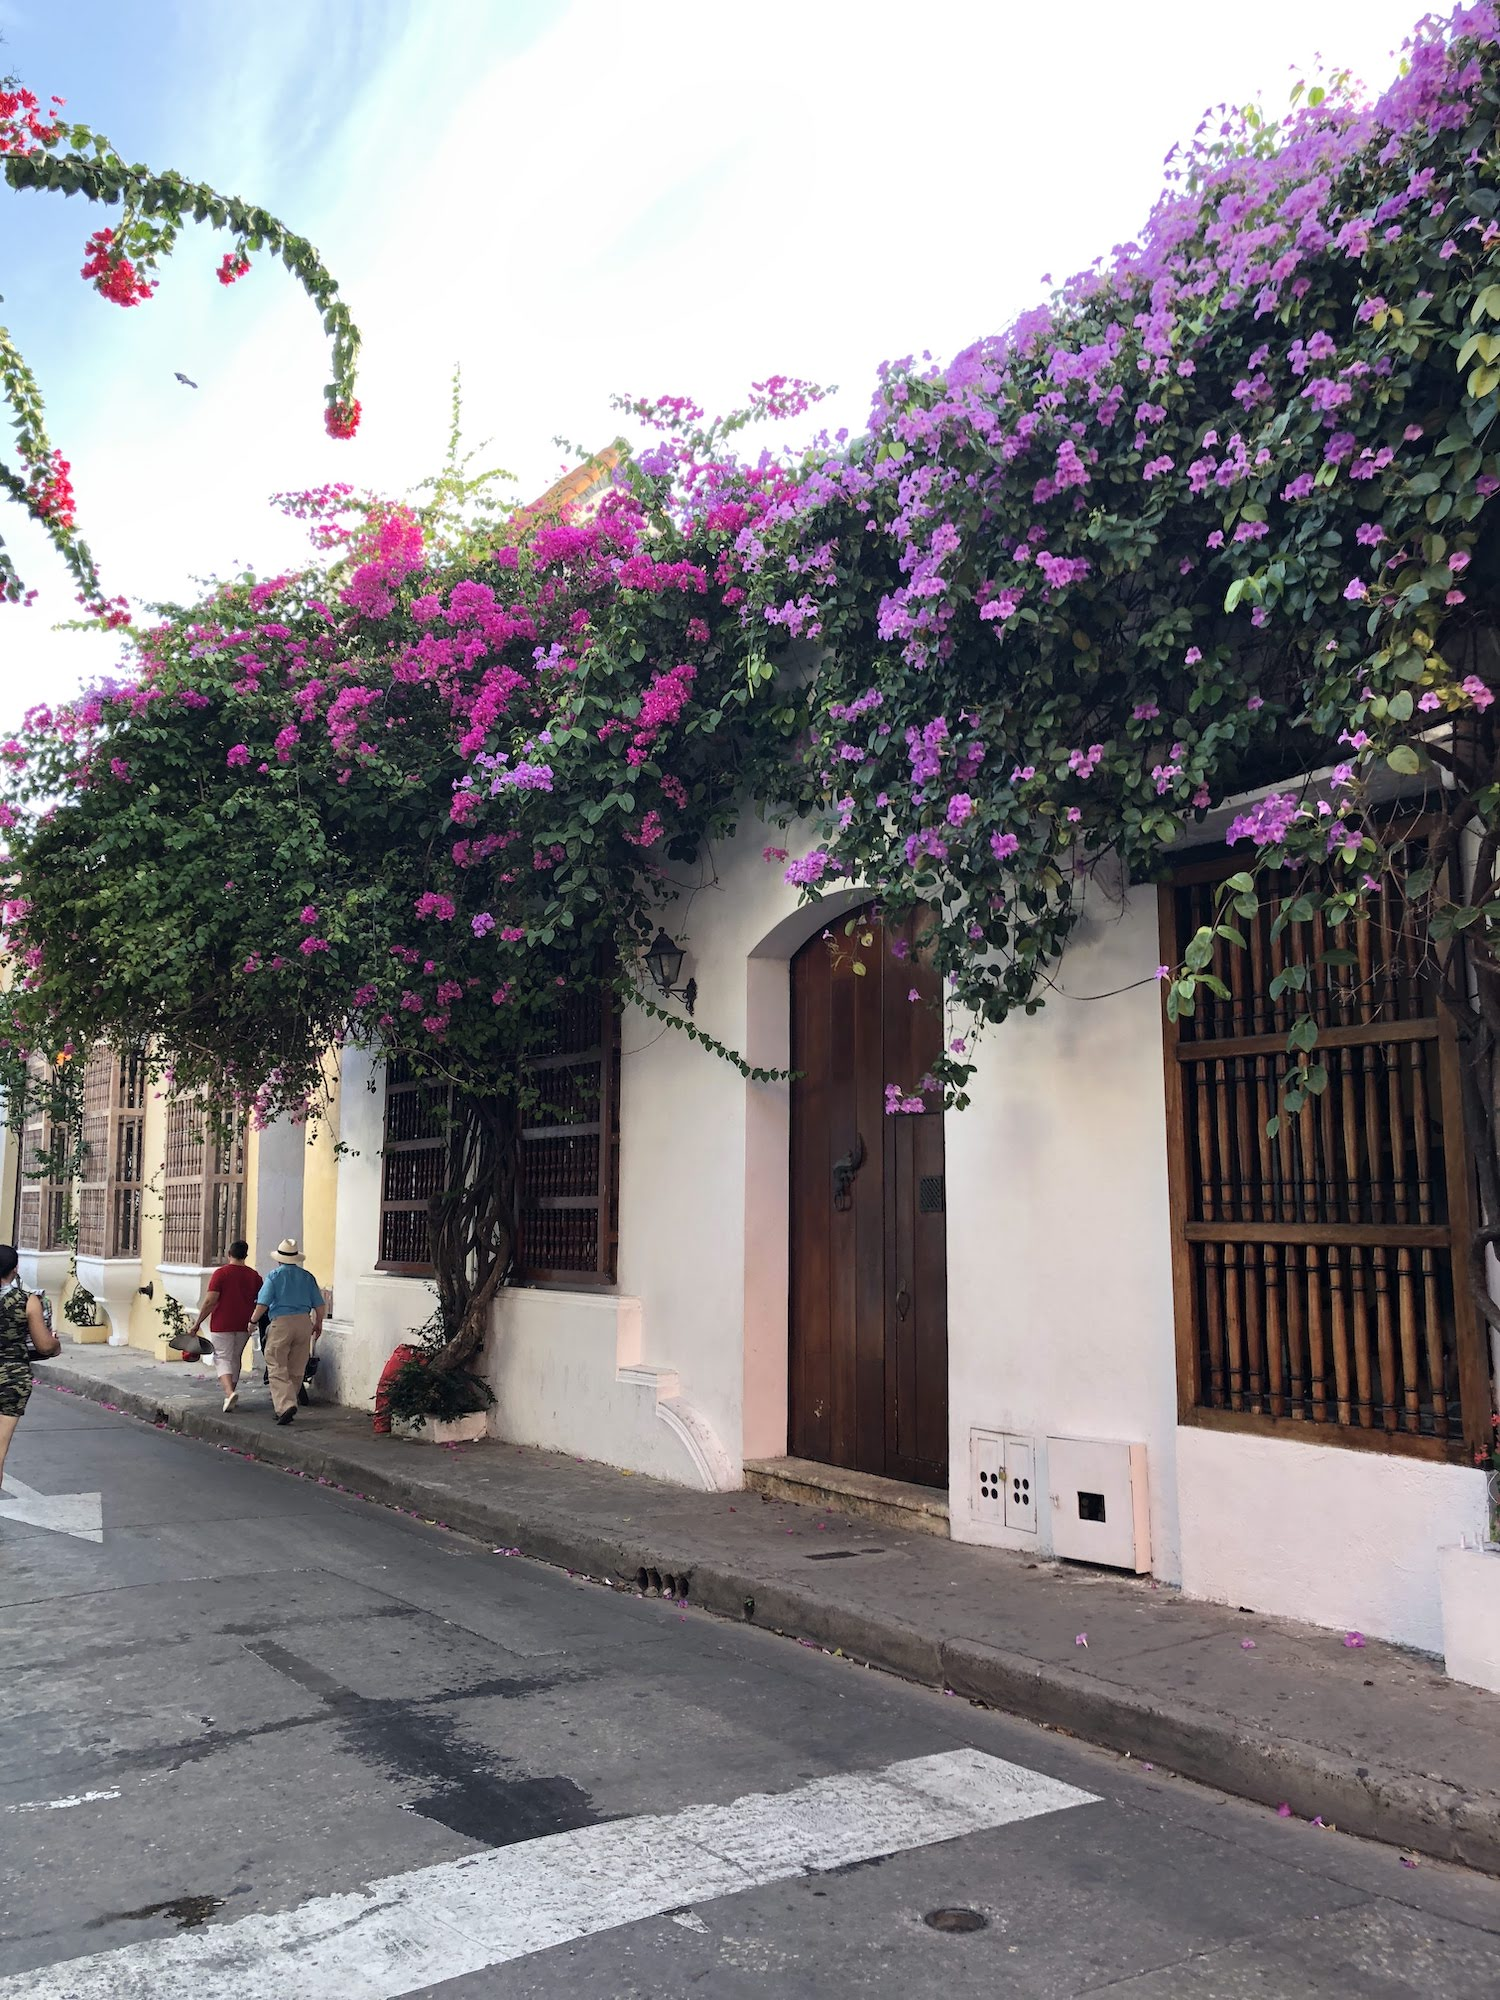 Flowers creep over rooftops and balconies on nearly every street